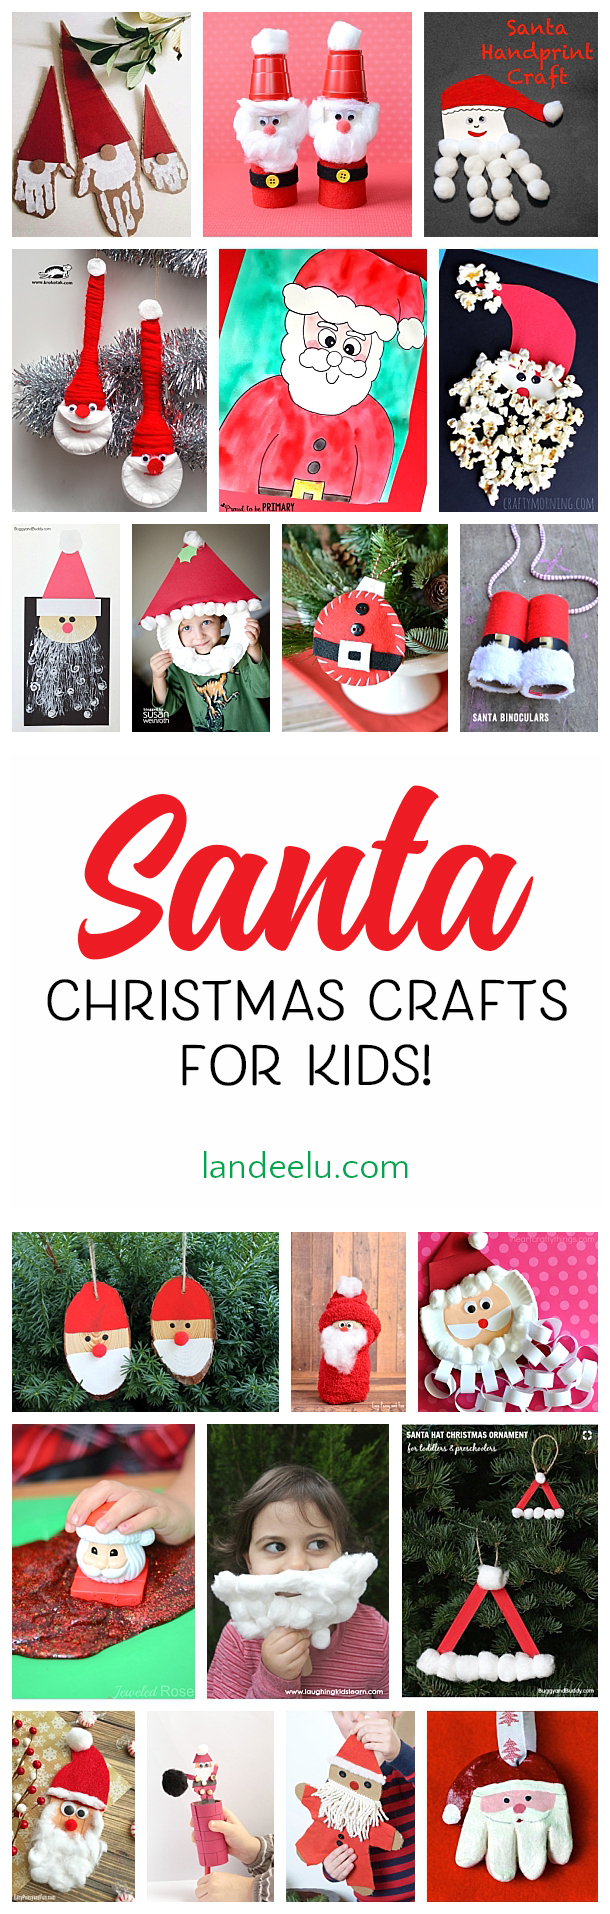 I love these Santa Christmas crafts for kids! My favorite is the cute ornament!